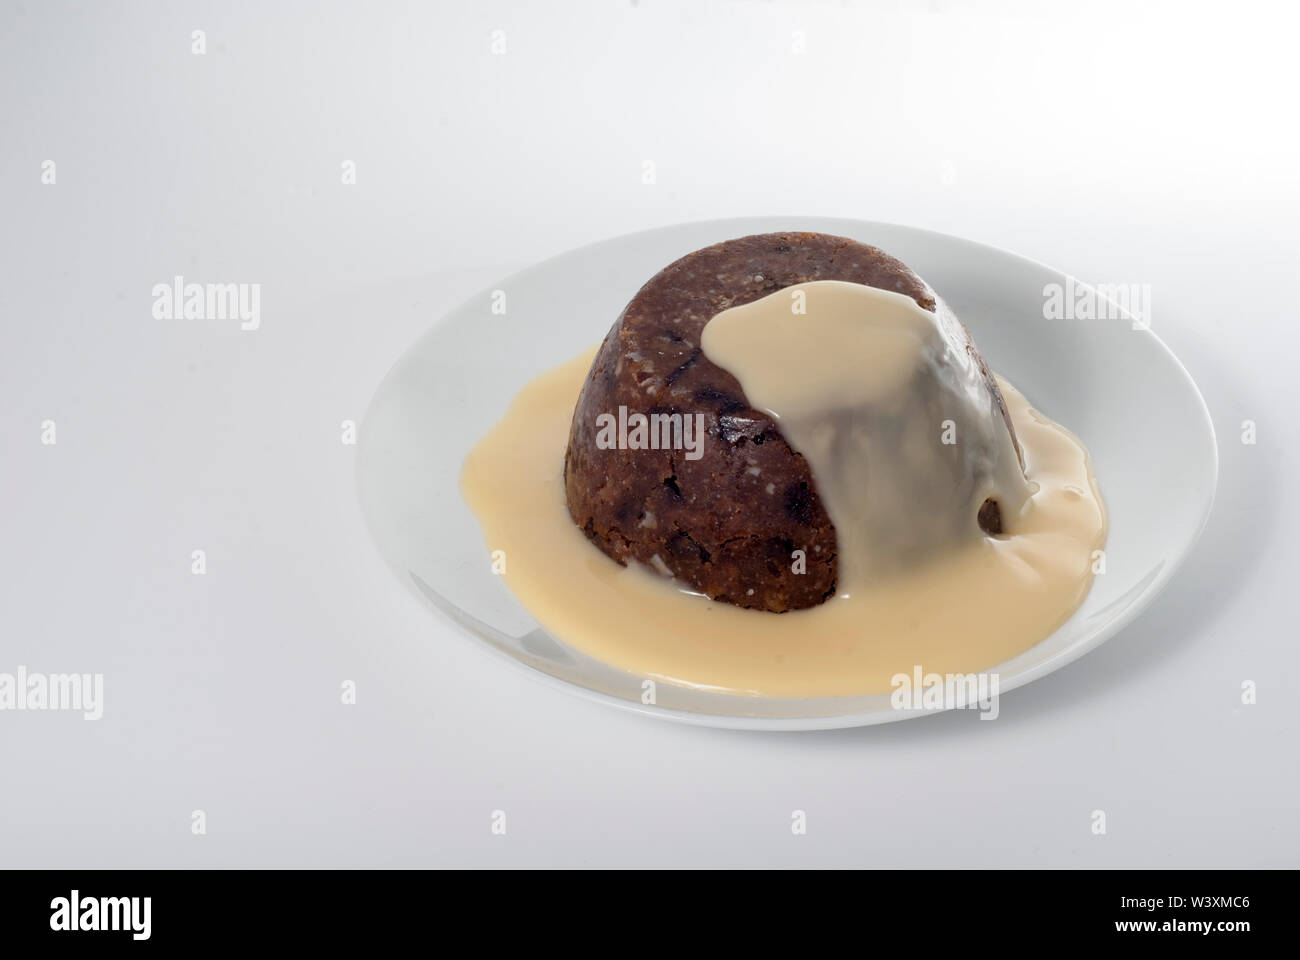 Pudding Custard Uk High Resolution Stock Photography And Images Alamy